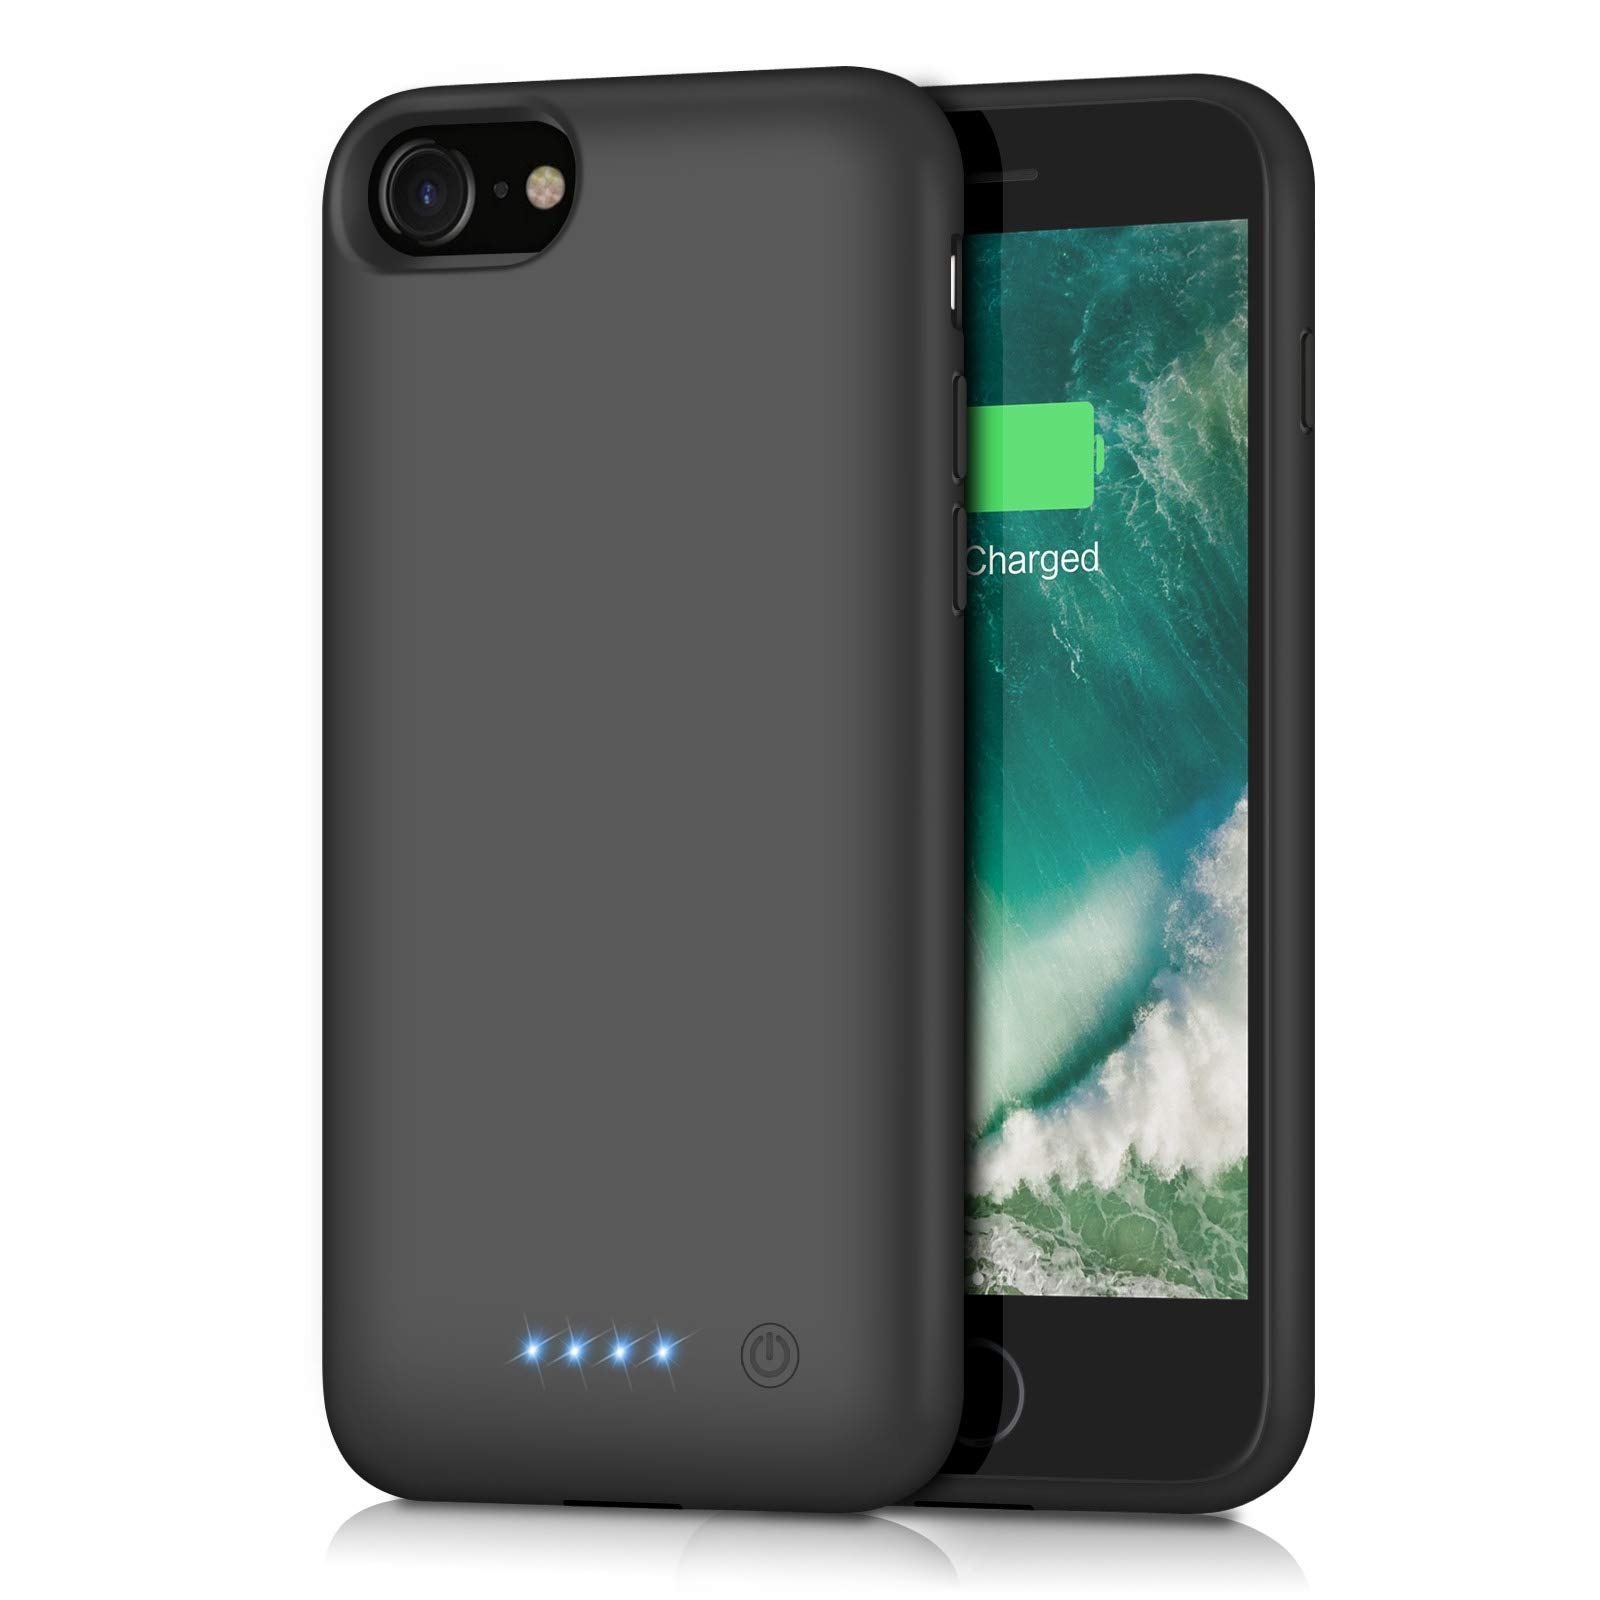 Battery case for iPhone 8/7, Xooparc [6000mah] Upgraded Charging Case Protective Portable Charger Case Rechargeable Extended Battery Pack for Apple iPhone 7/8(4.7') Backup Power Bank Cover (Black) by Xooparc